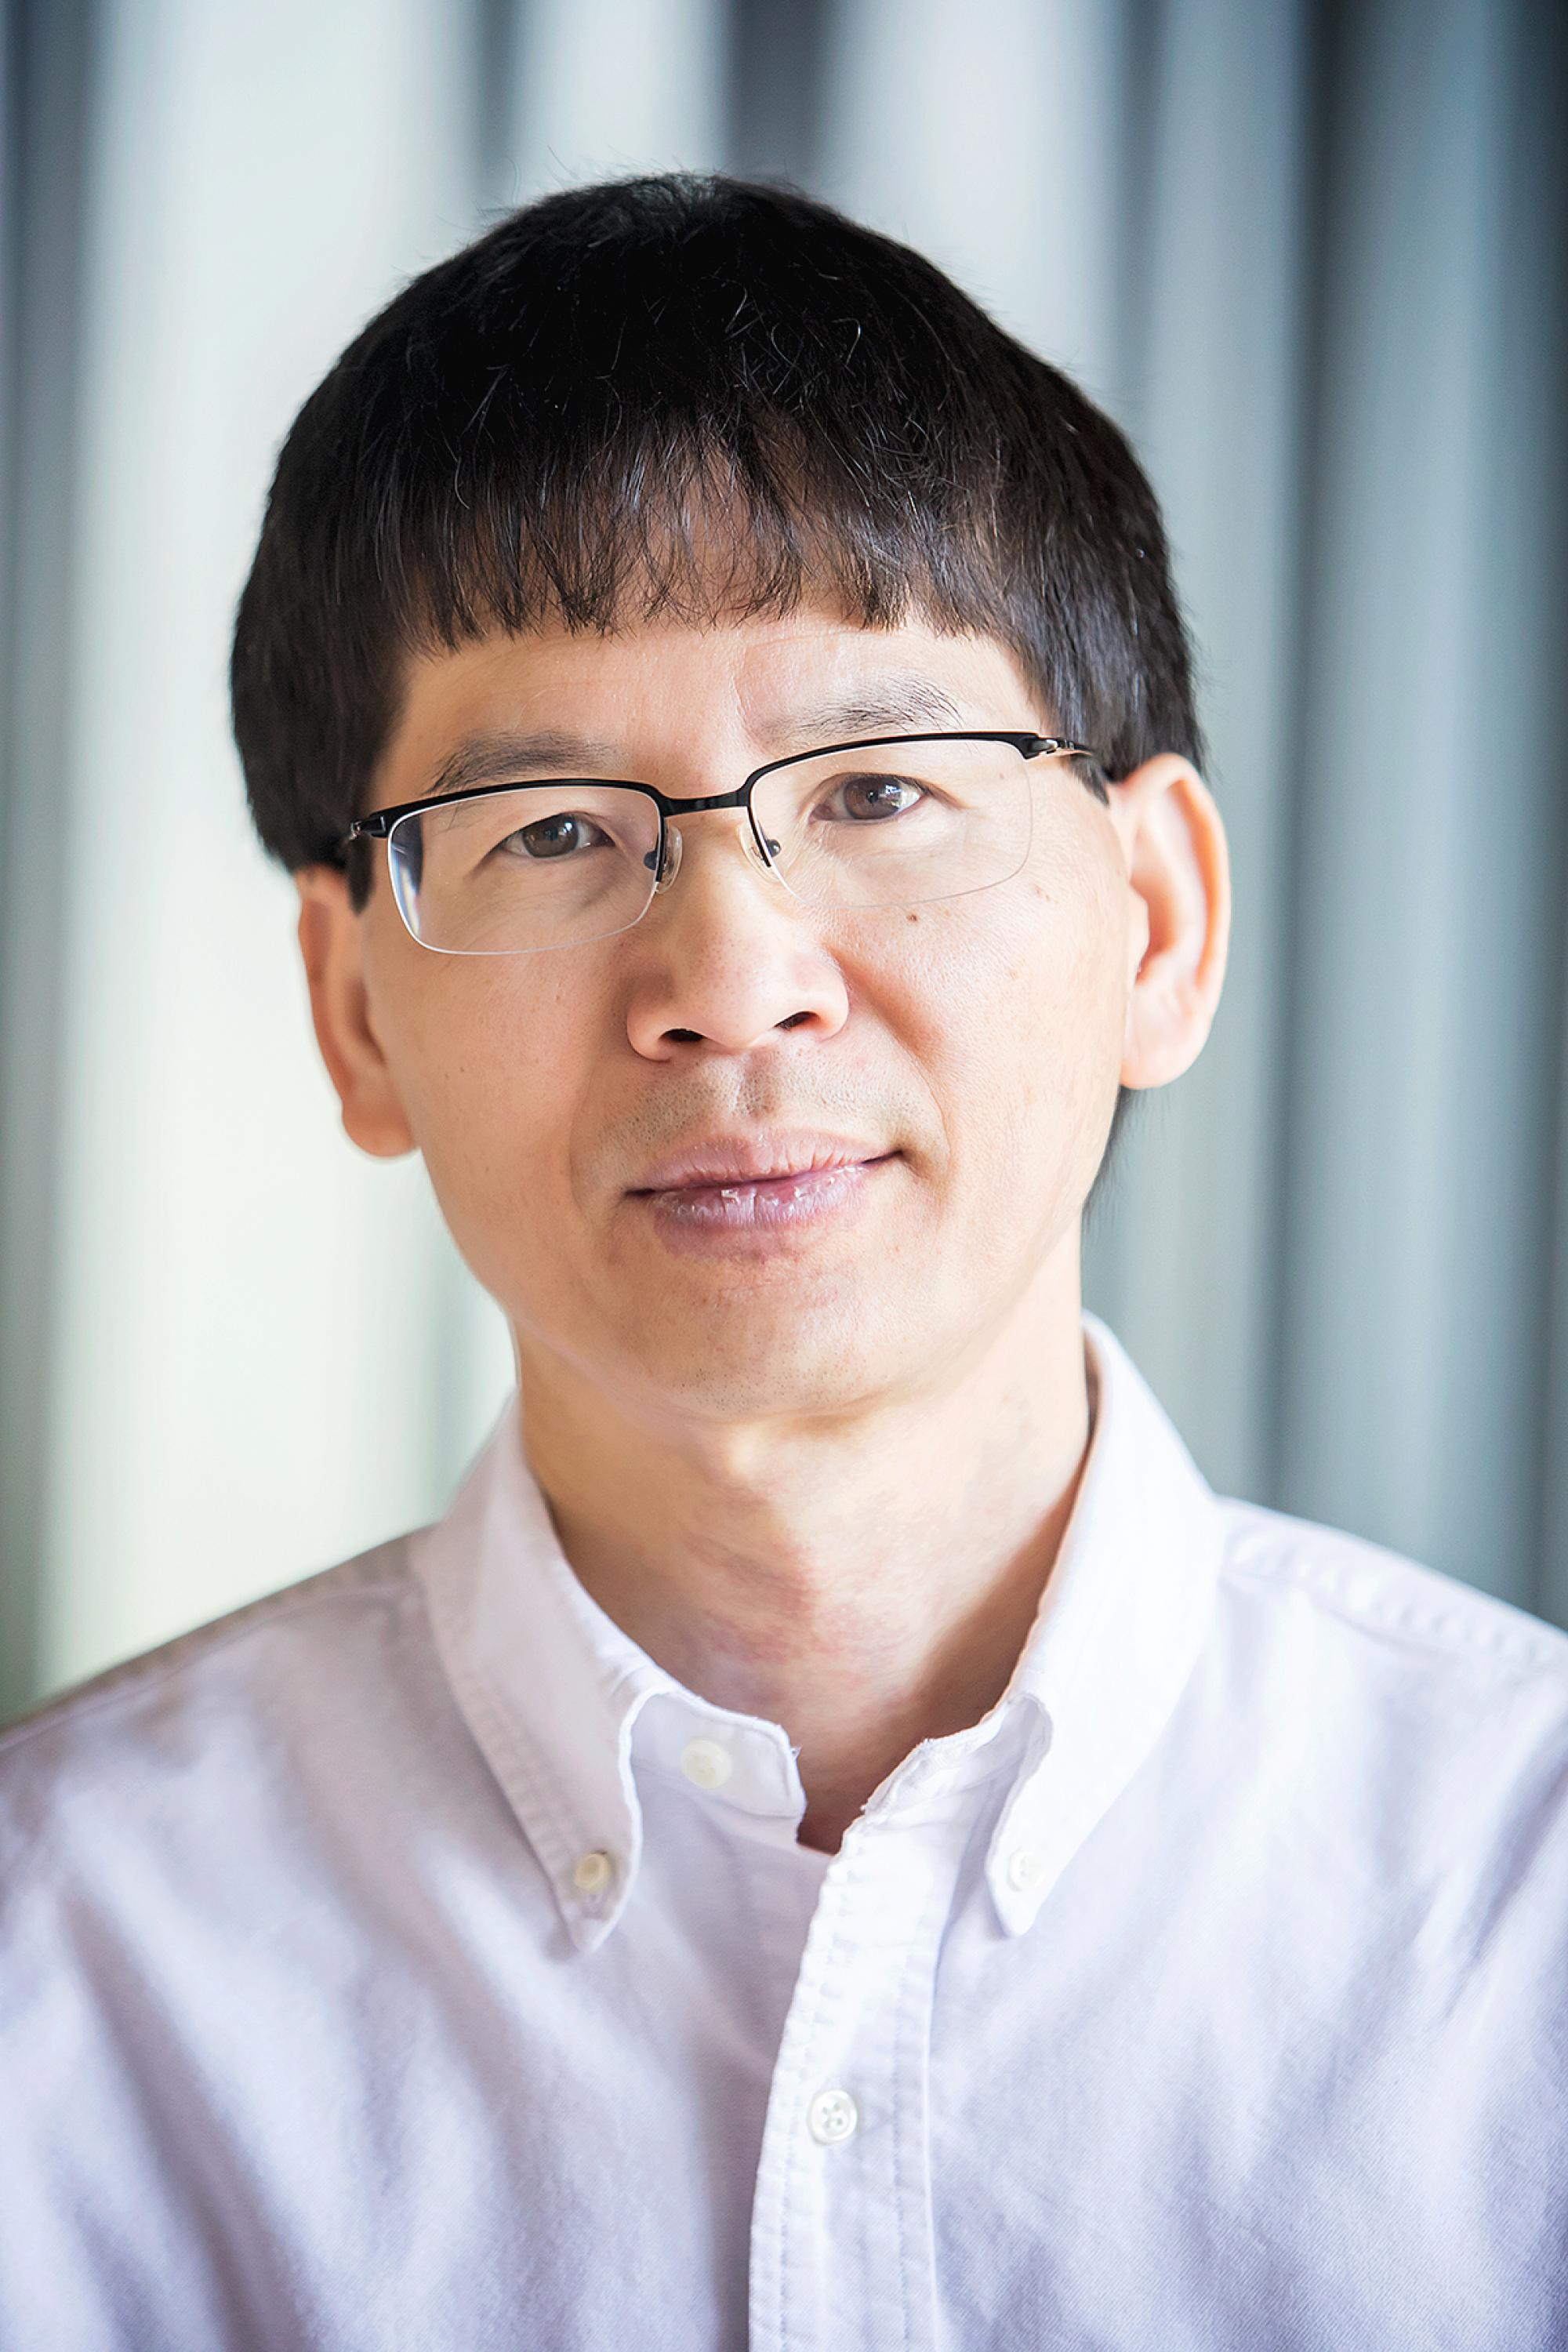 Pham Huu Tiep recently contributed to solving the 60-year-old Ore conjecture alongside professors from New Zealand, London and Jerusalem. Tiep will deliver an invited lecture at the 2018 International Congress of Mathematicians, the largest and most prest